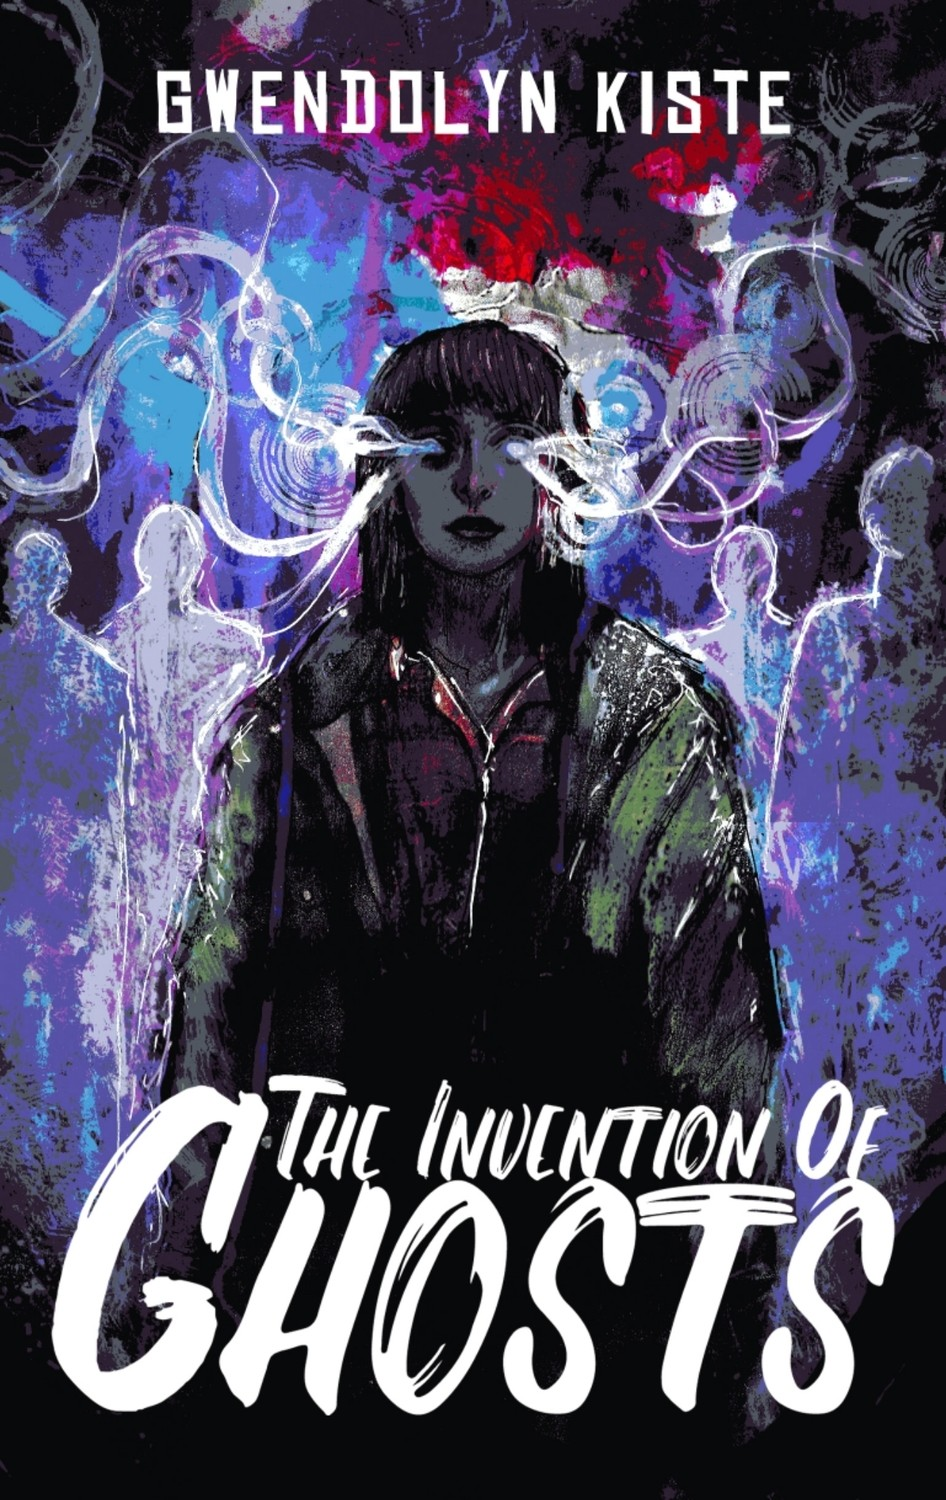 The Invention of Ghosts by Gwendolyn Kiste (Charitable Chapbook #6)